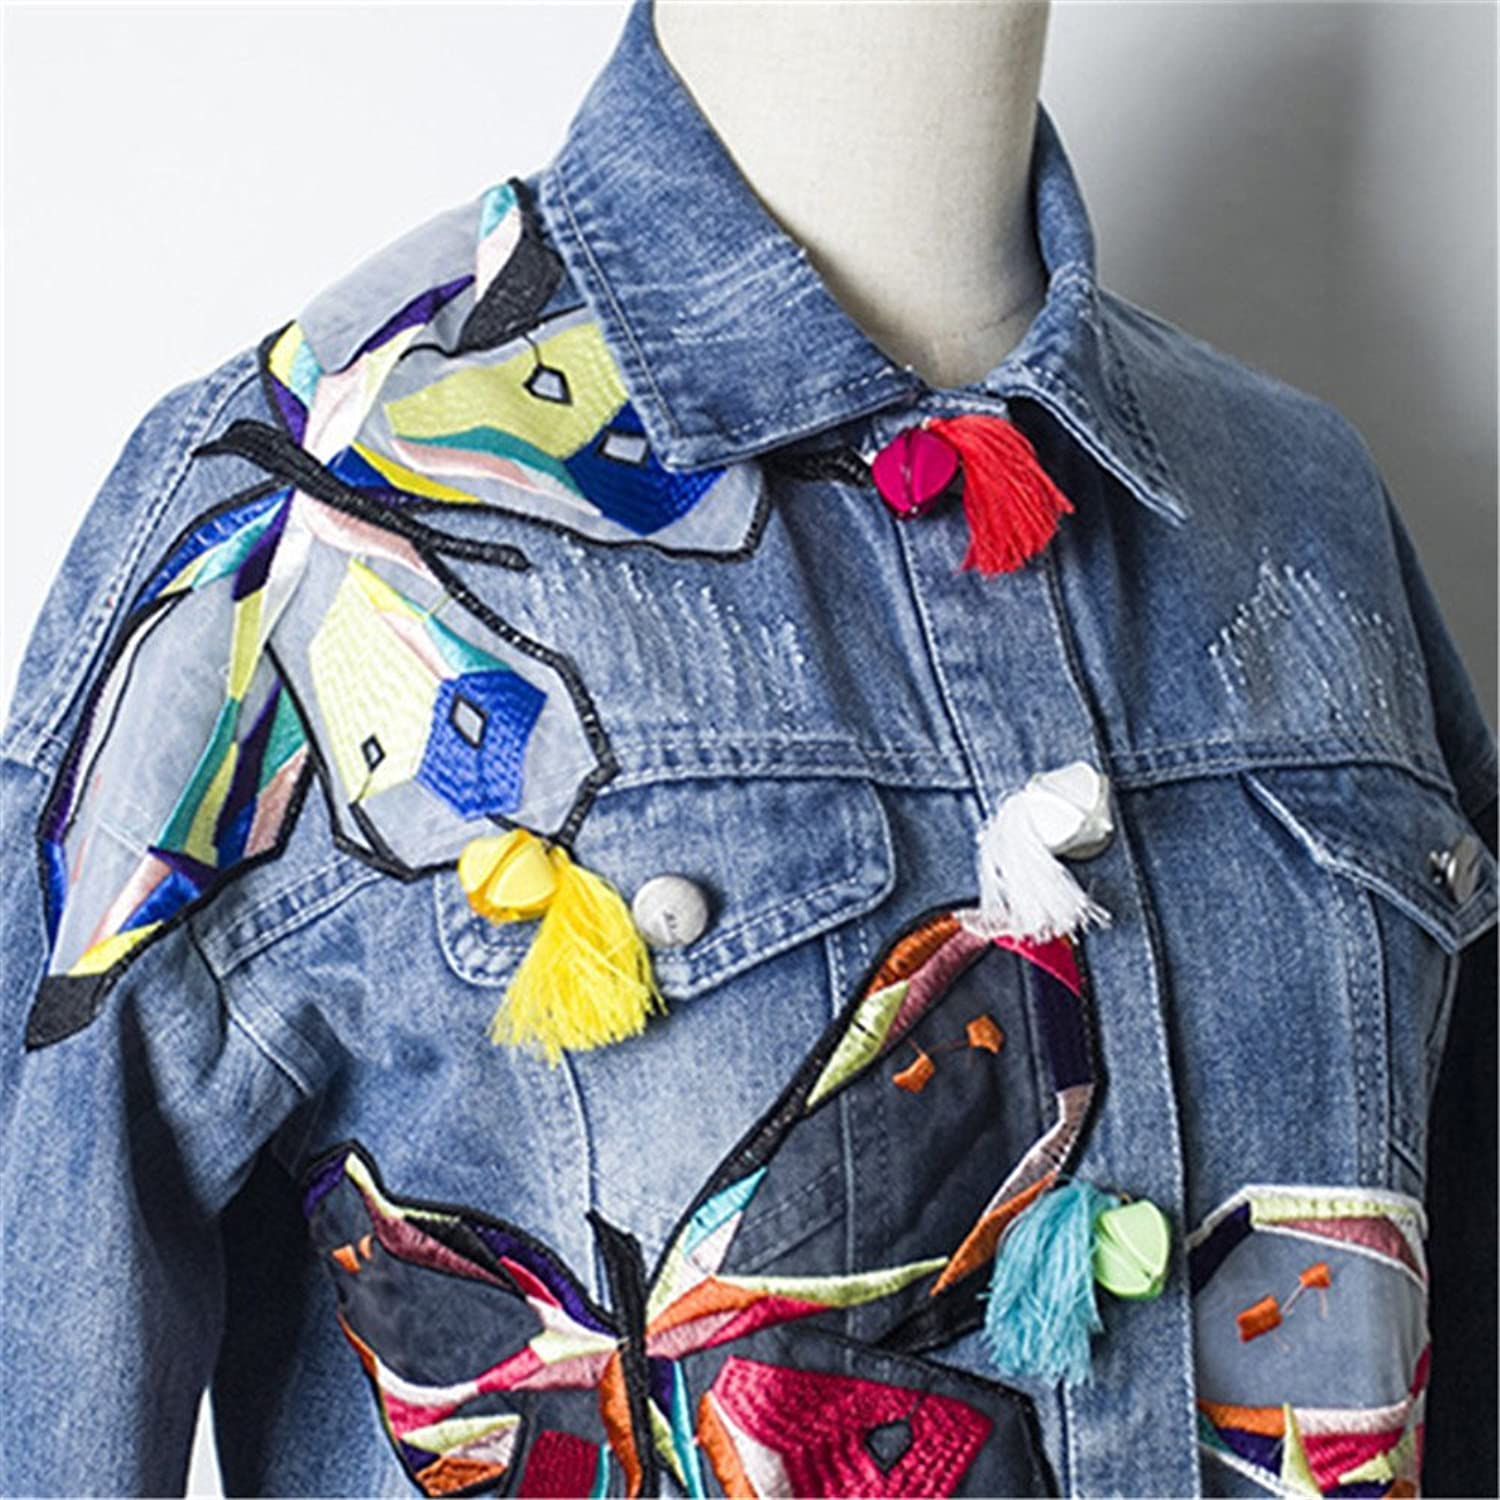 Fall Winter High Waist Women Ripped Short Denim Jackets Ladies Tassel Patches Butterfly Embroidery Jean Coat C08029 at Amazon Womens Coats Shop